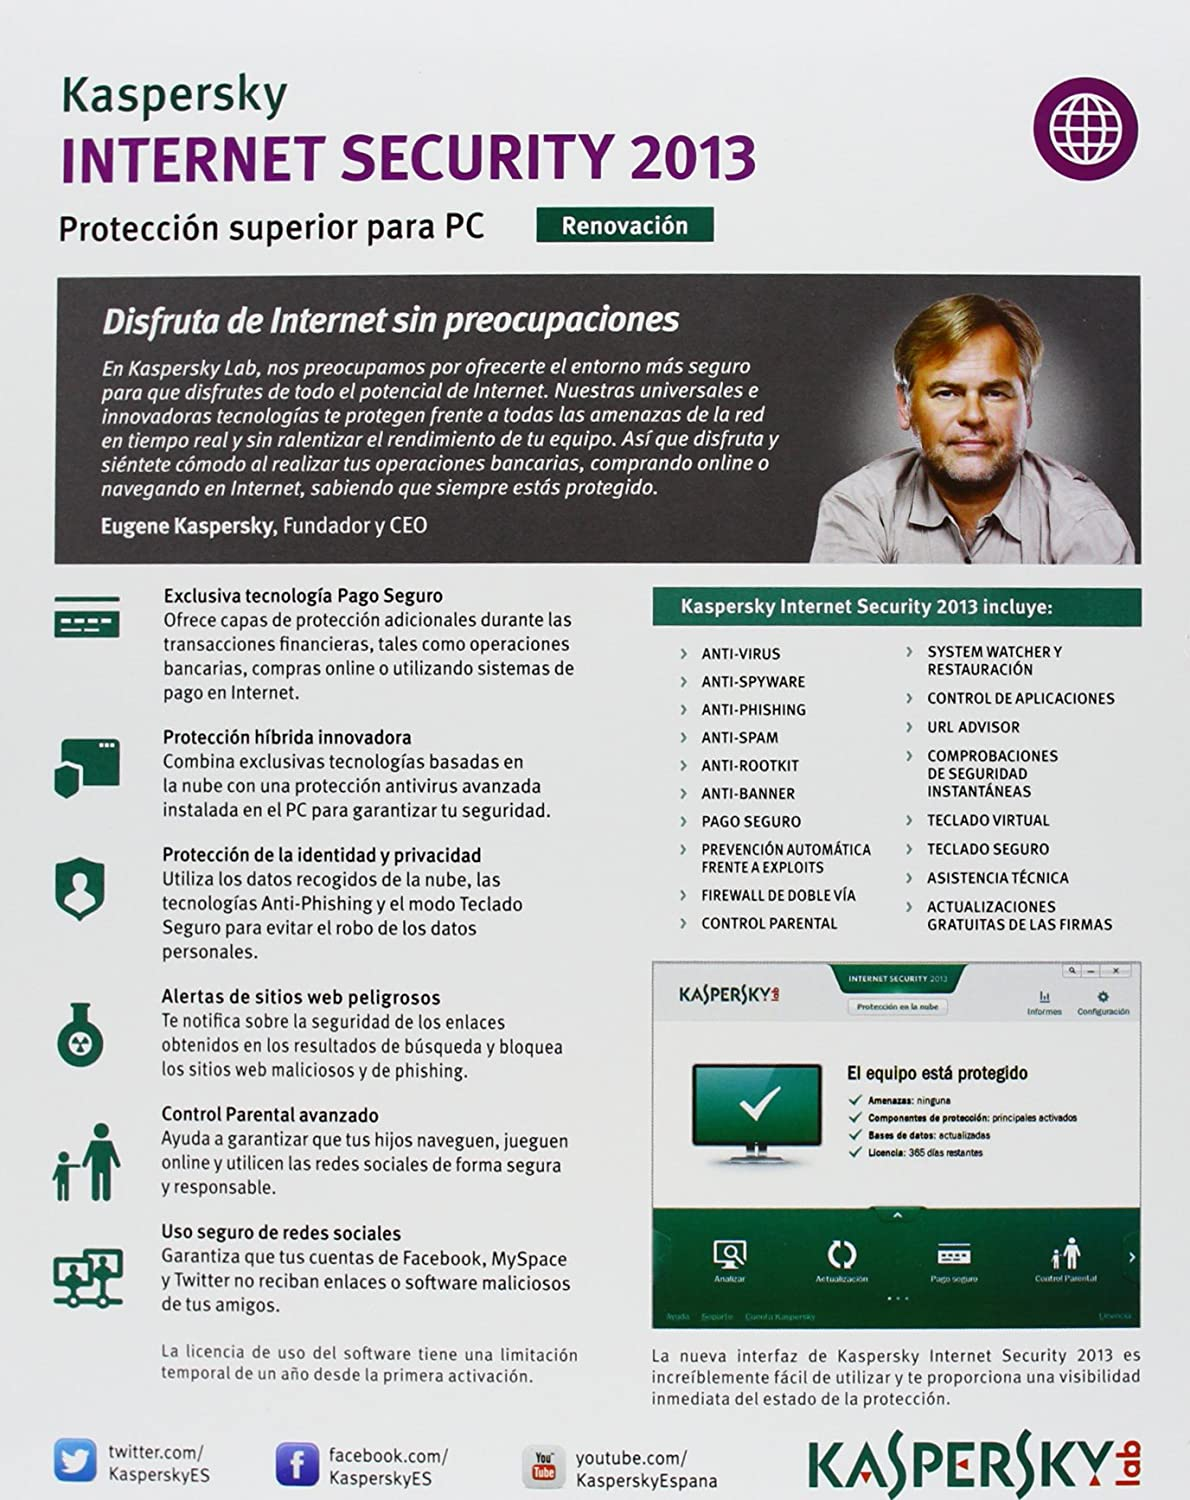 Kaspersky Internet Security 2013 - Paquete, Español, 3 Licencias Renovación, 1 Año: Amazon.es: Software